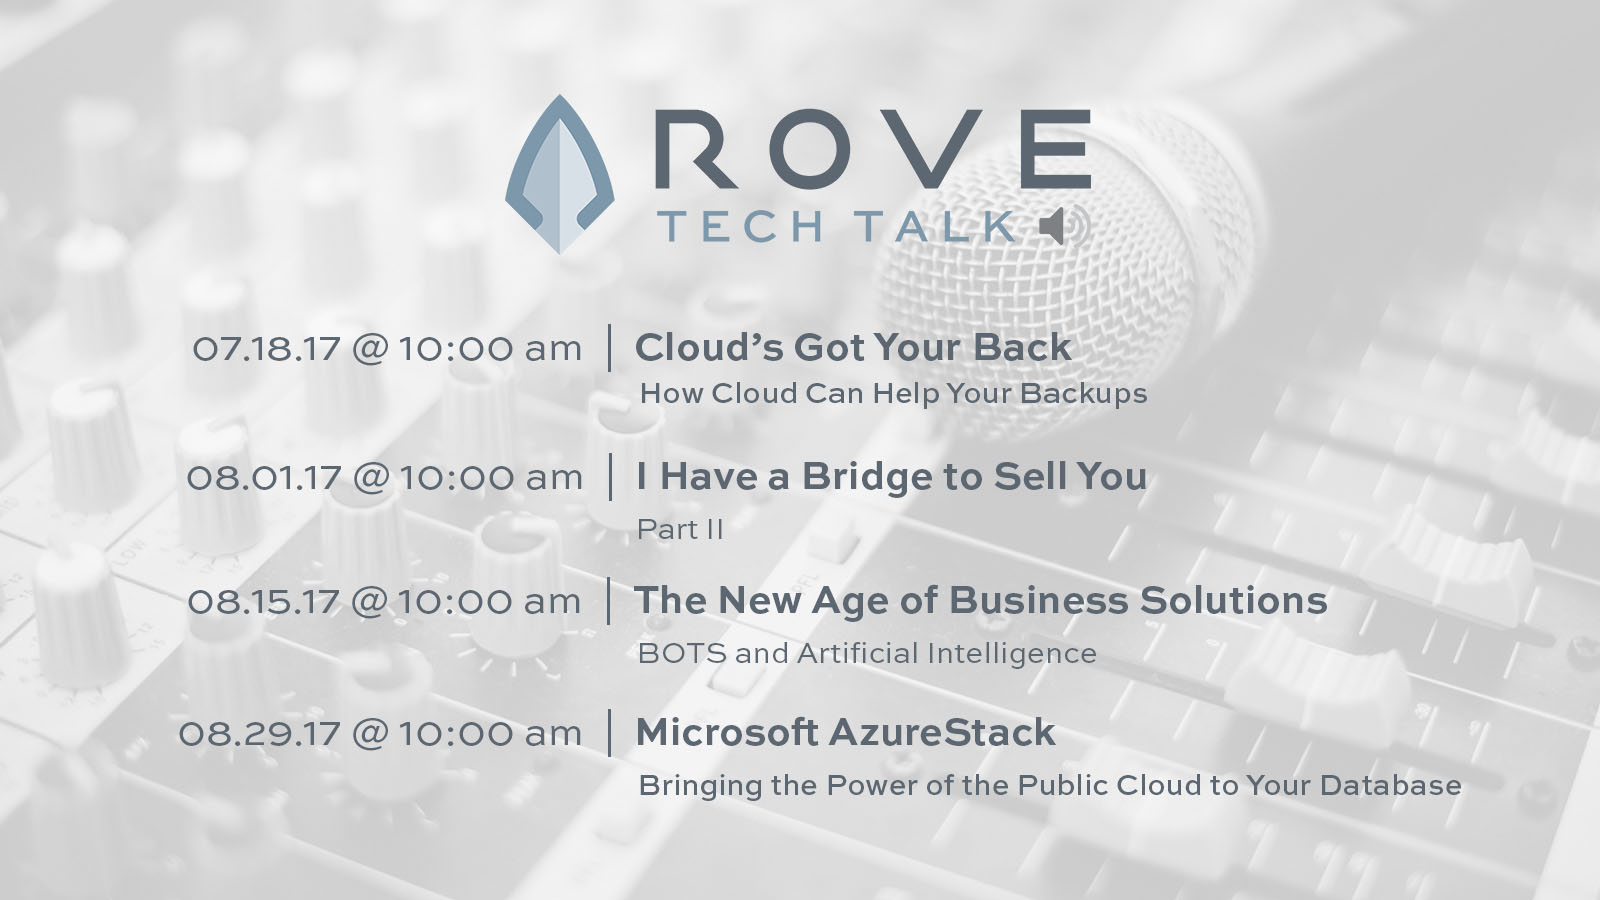 ROVE Tech Talk Click to Register Enlarged Schedule.jpg